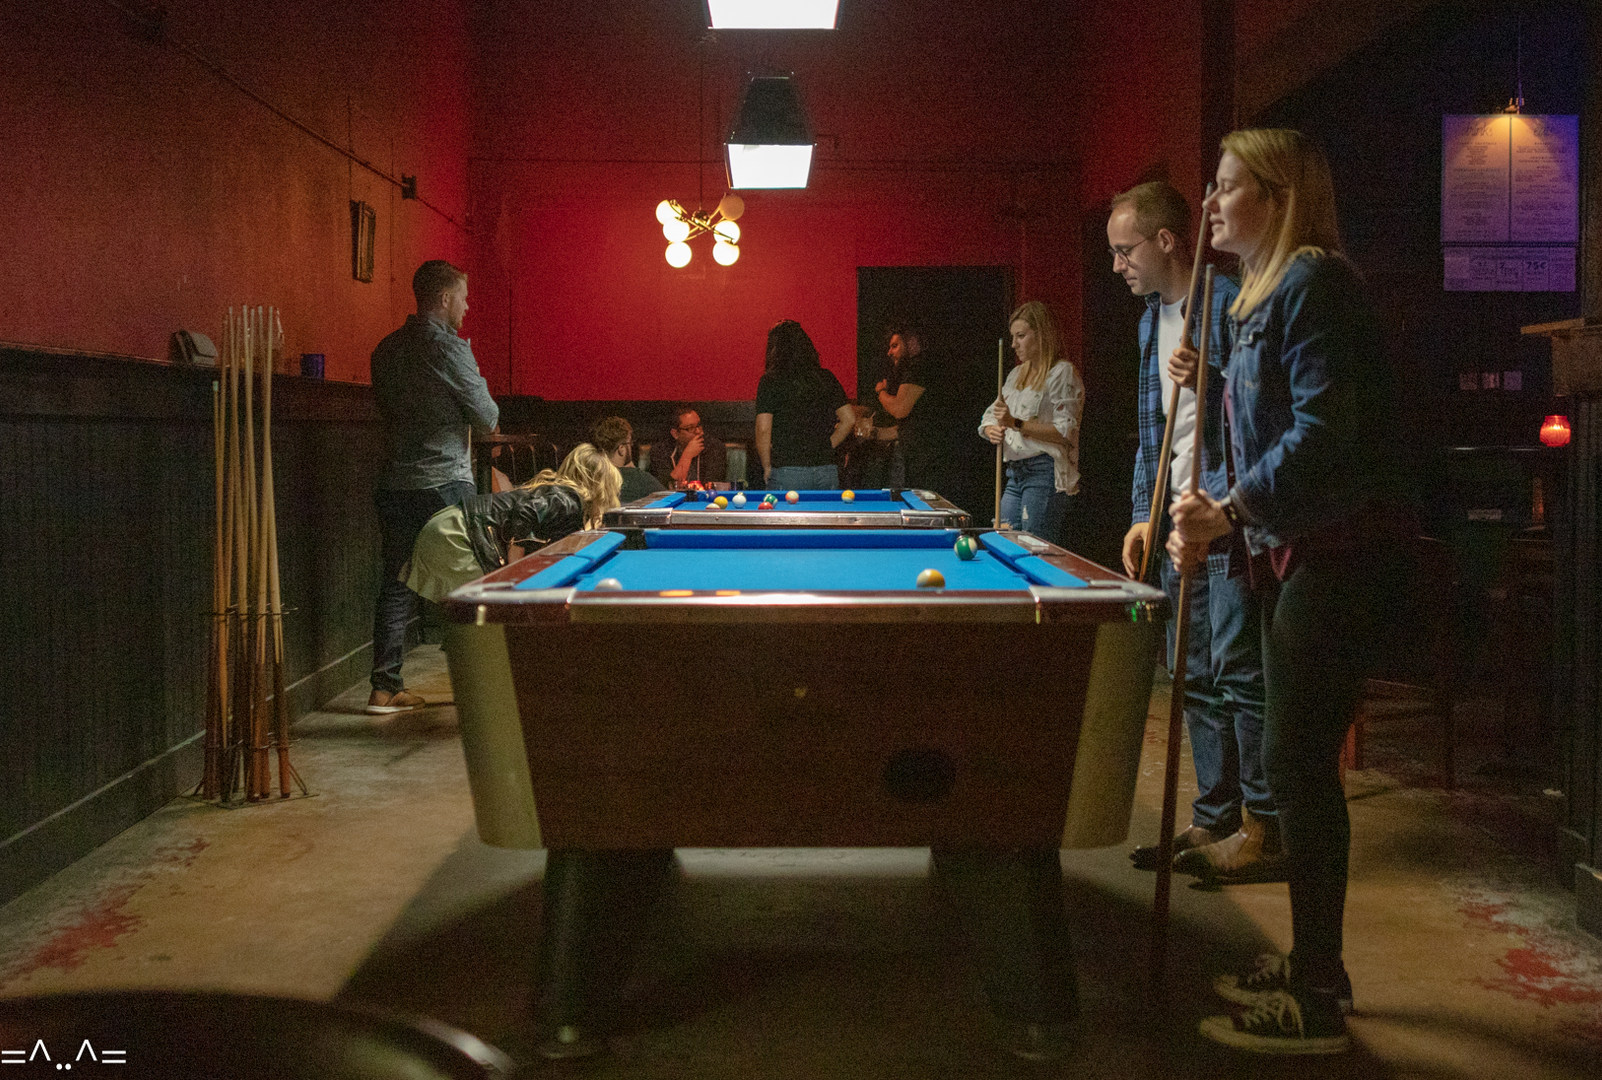 Grab some friends for a game of pool in our red room.